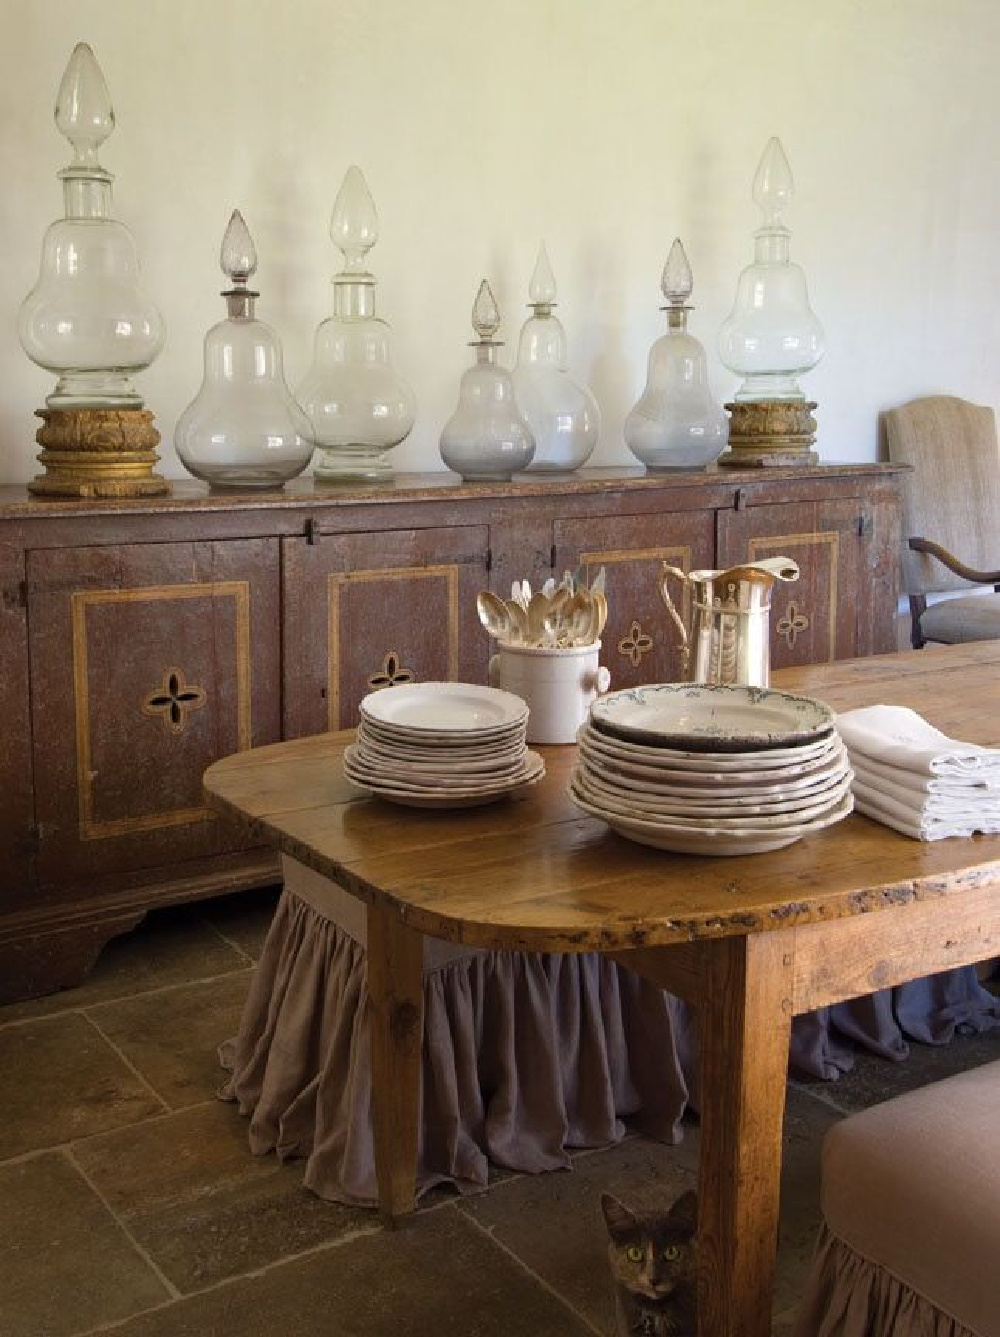 Old apothecary jars, rustic antiques from Europe, and a concerned kitty too in a dining room by Chateau Domingue. #diningrooms #interiordesign #countryfrench